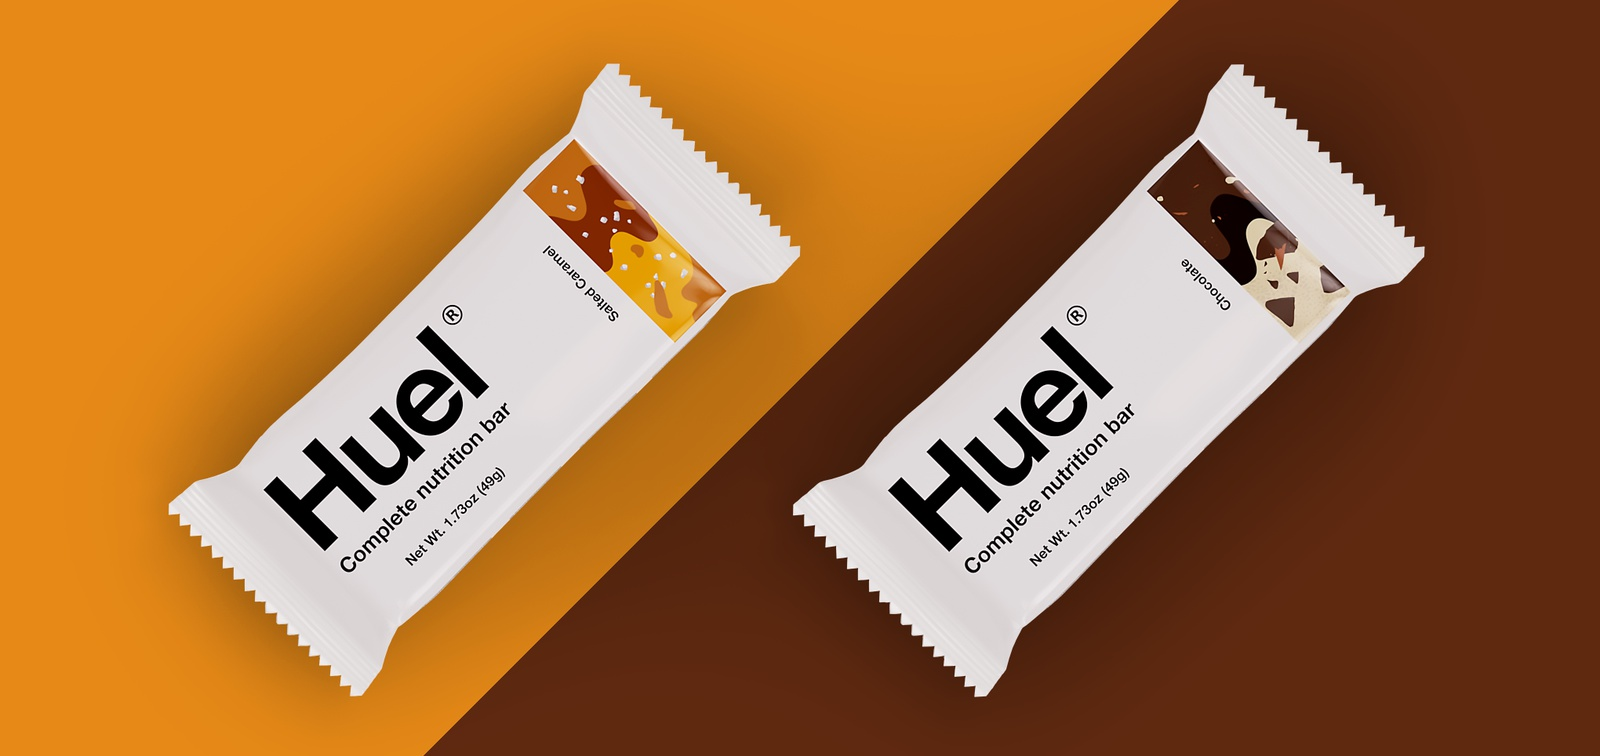 Huel brings bars that are 'nutritionally complete' to the US